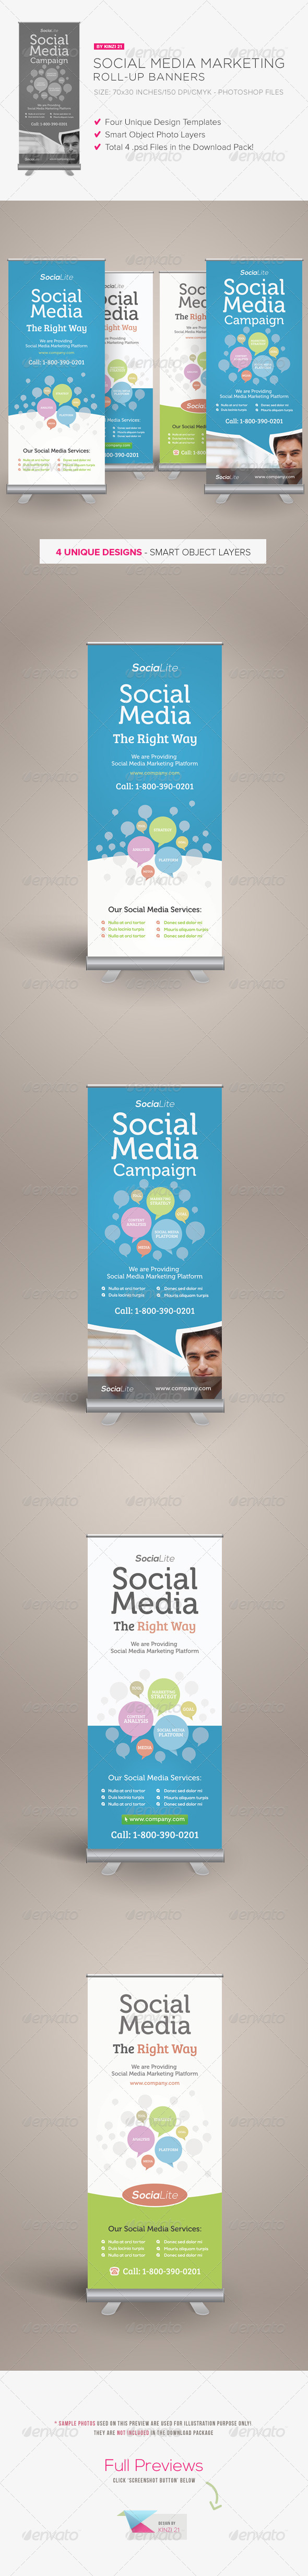 Social Media Marketing Roll-up Banners